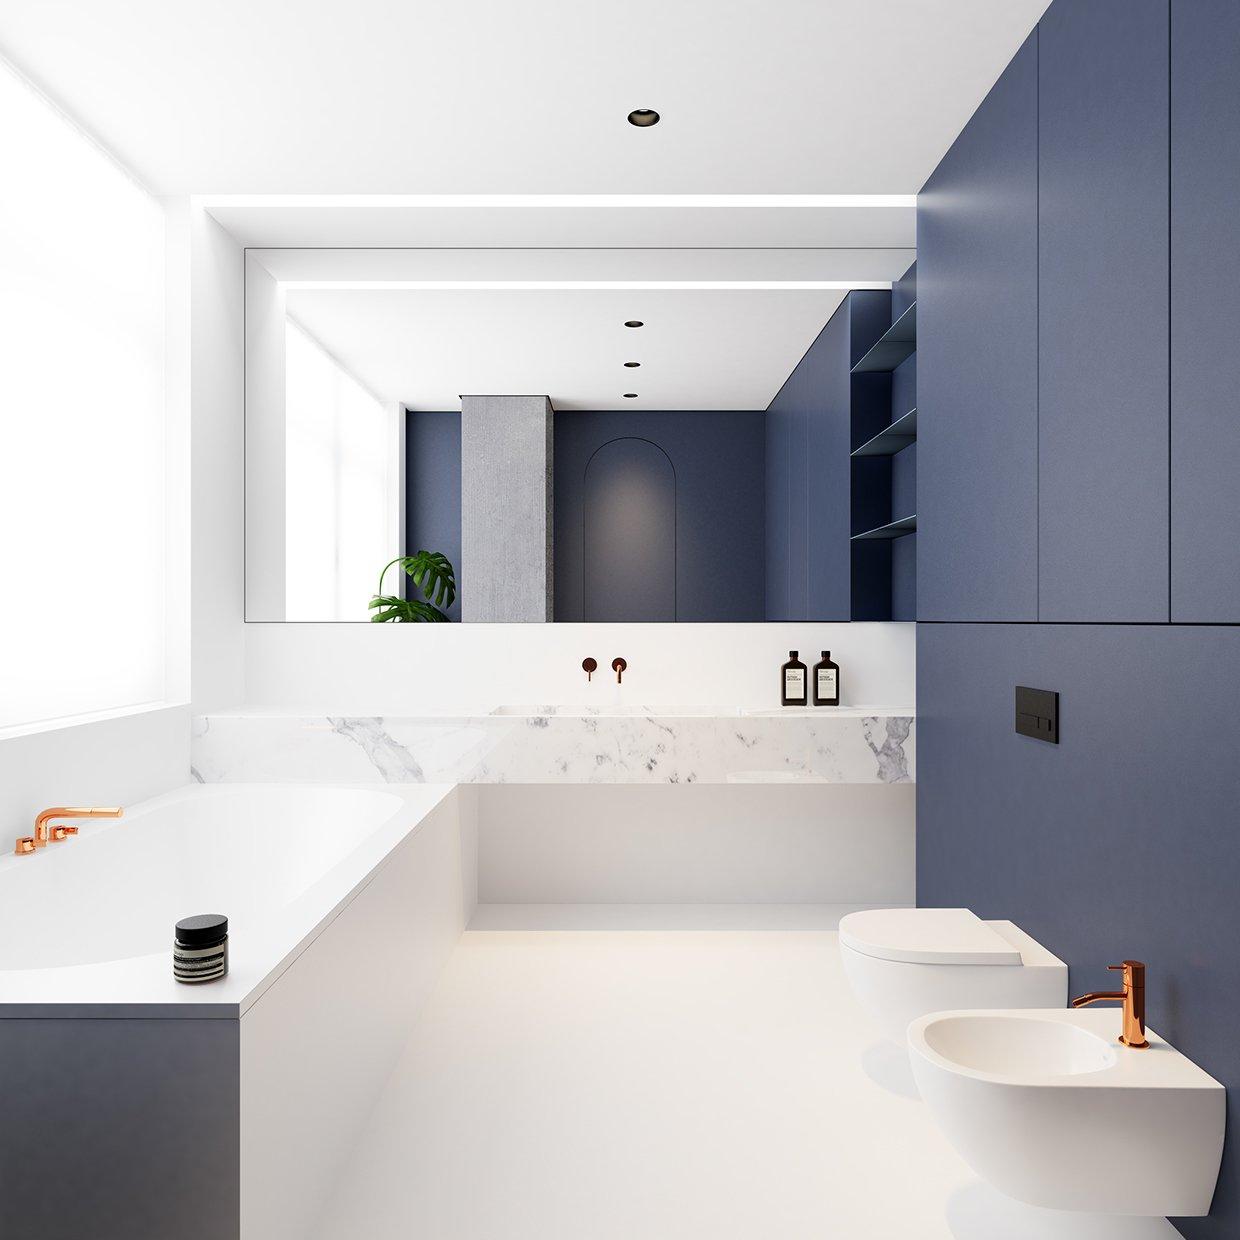 127+ Inspiring Interior Ideas by Dwell from FontanB by Emil Dervish